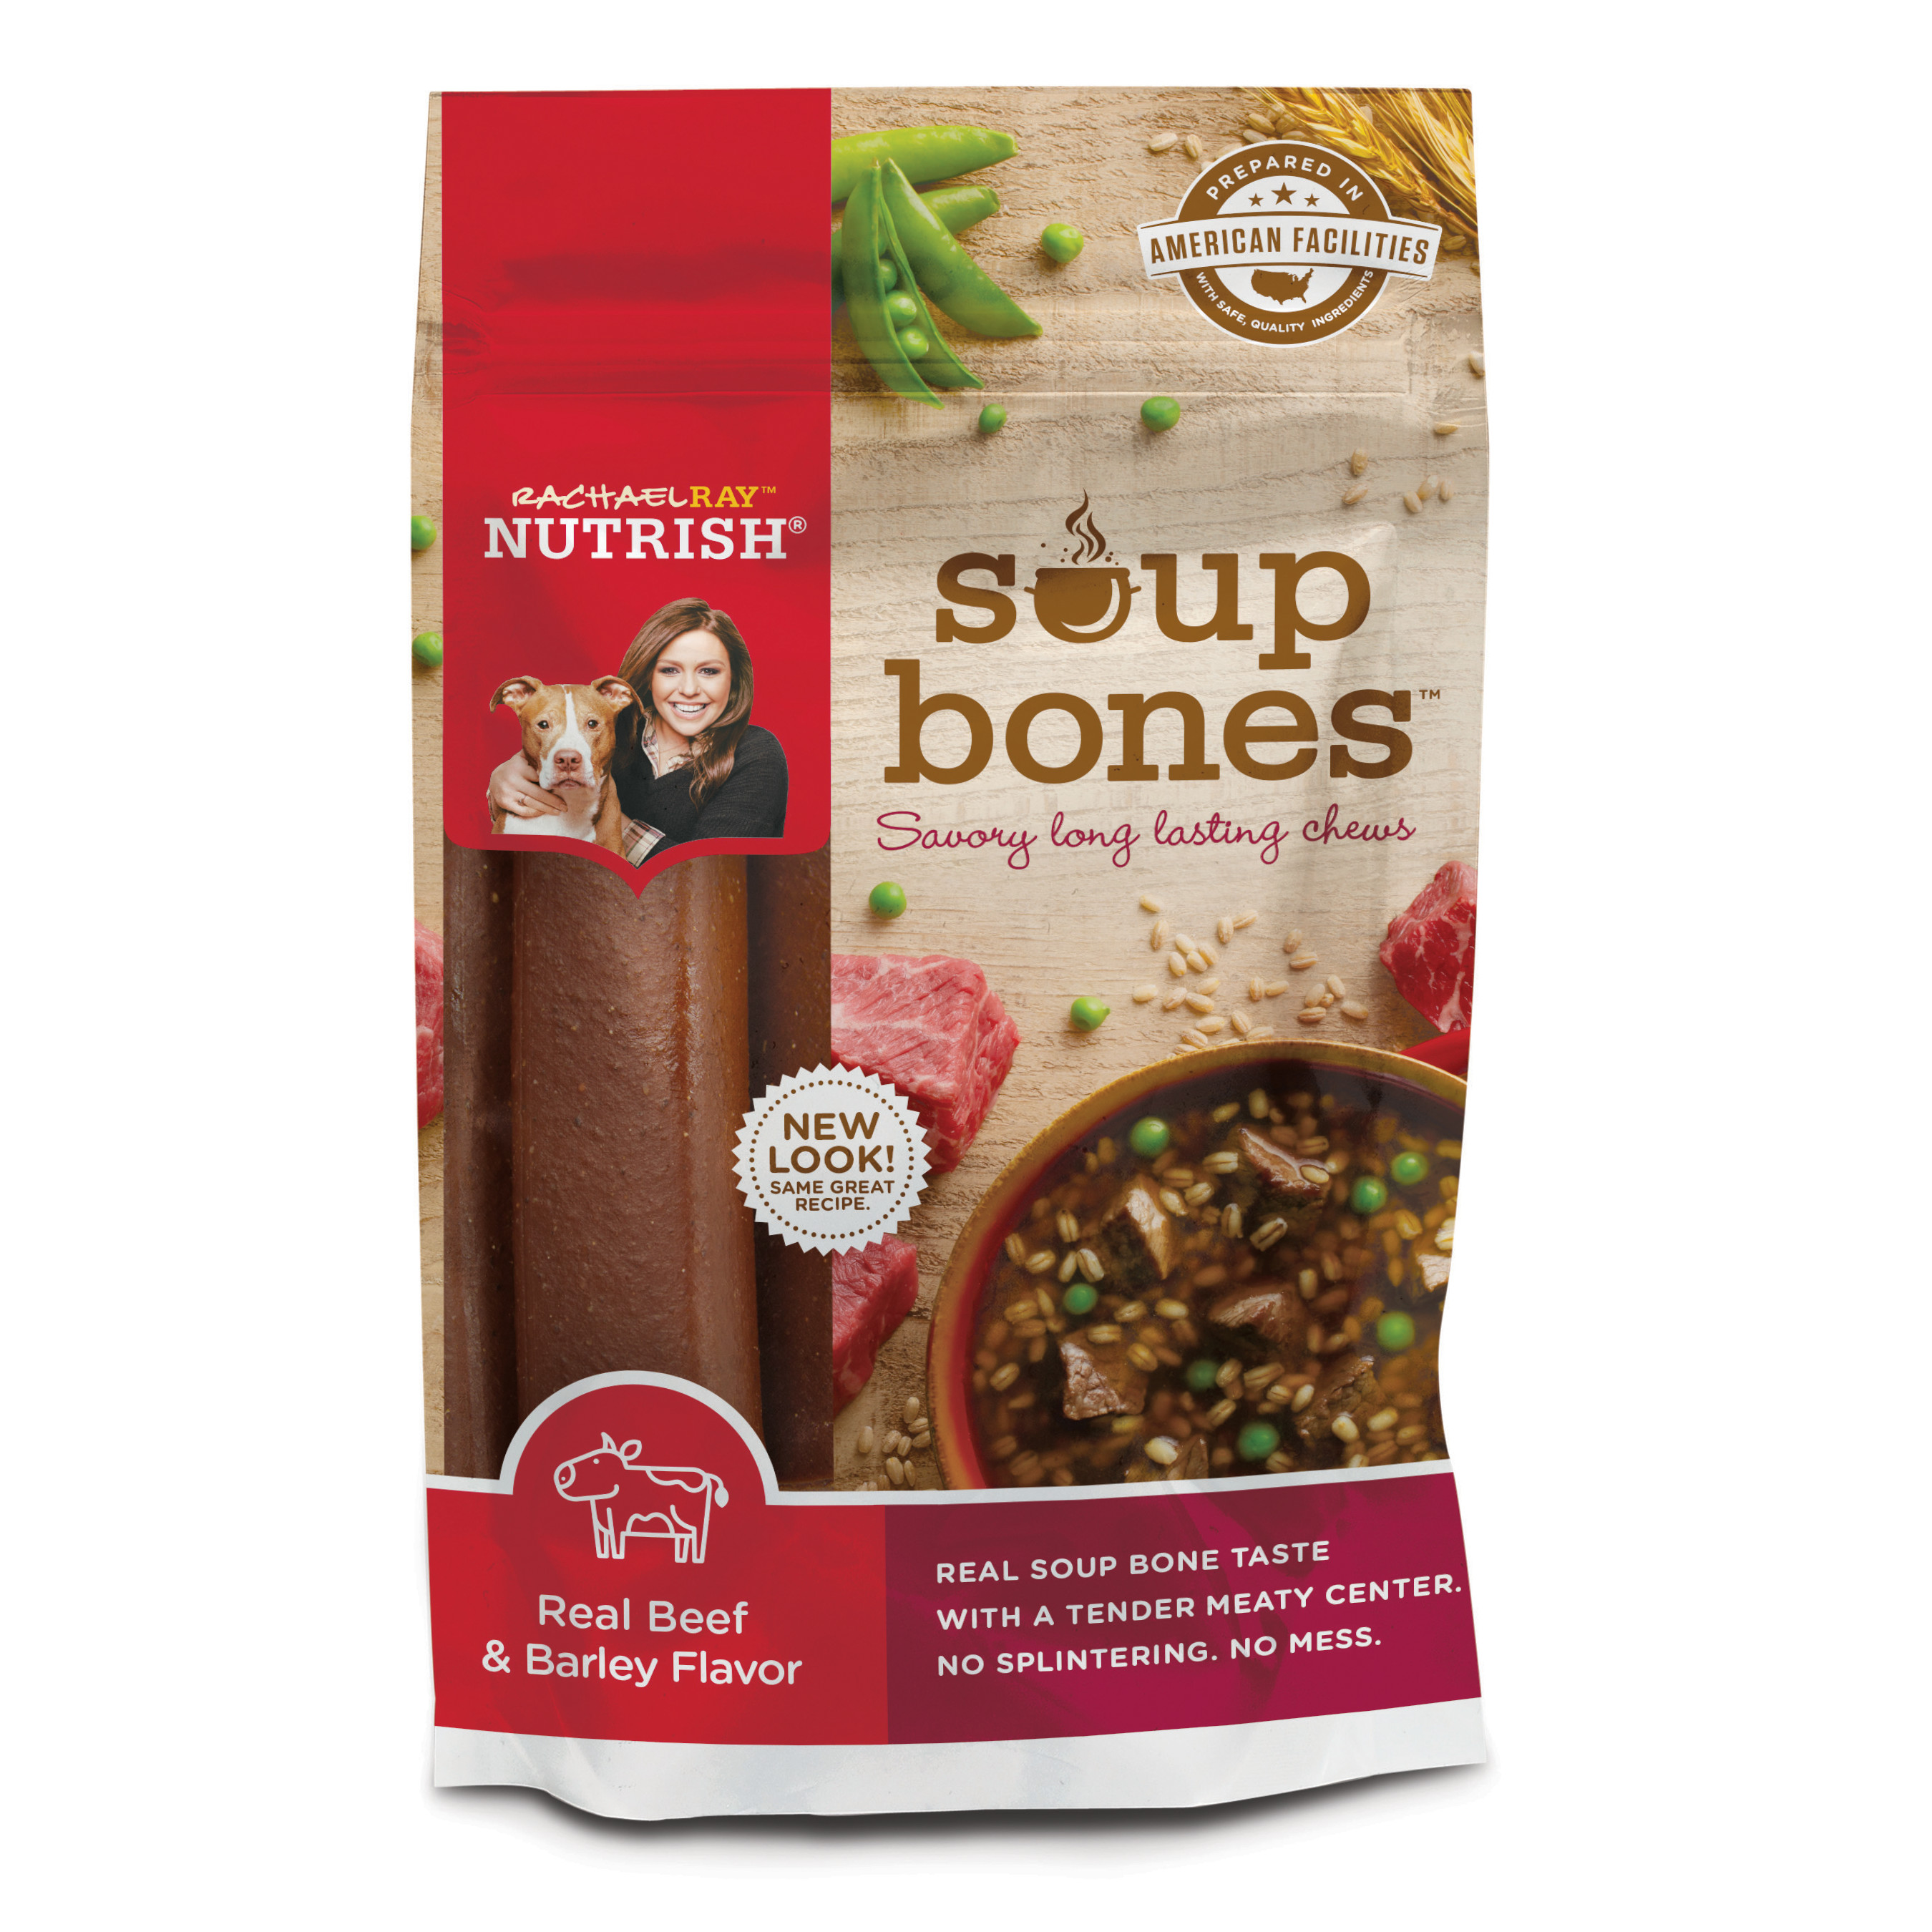 Rachael Ray Nutrish Soup Bones Dog Treats, Beef & Barley Flavor, 6.3oz